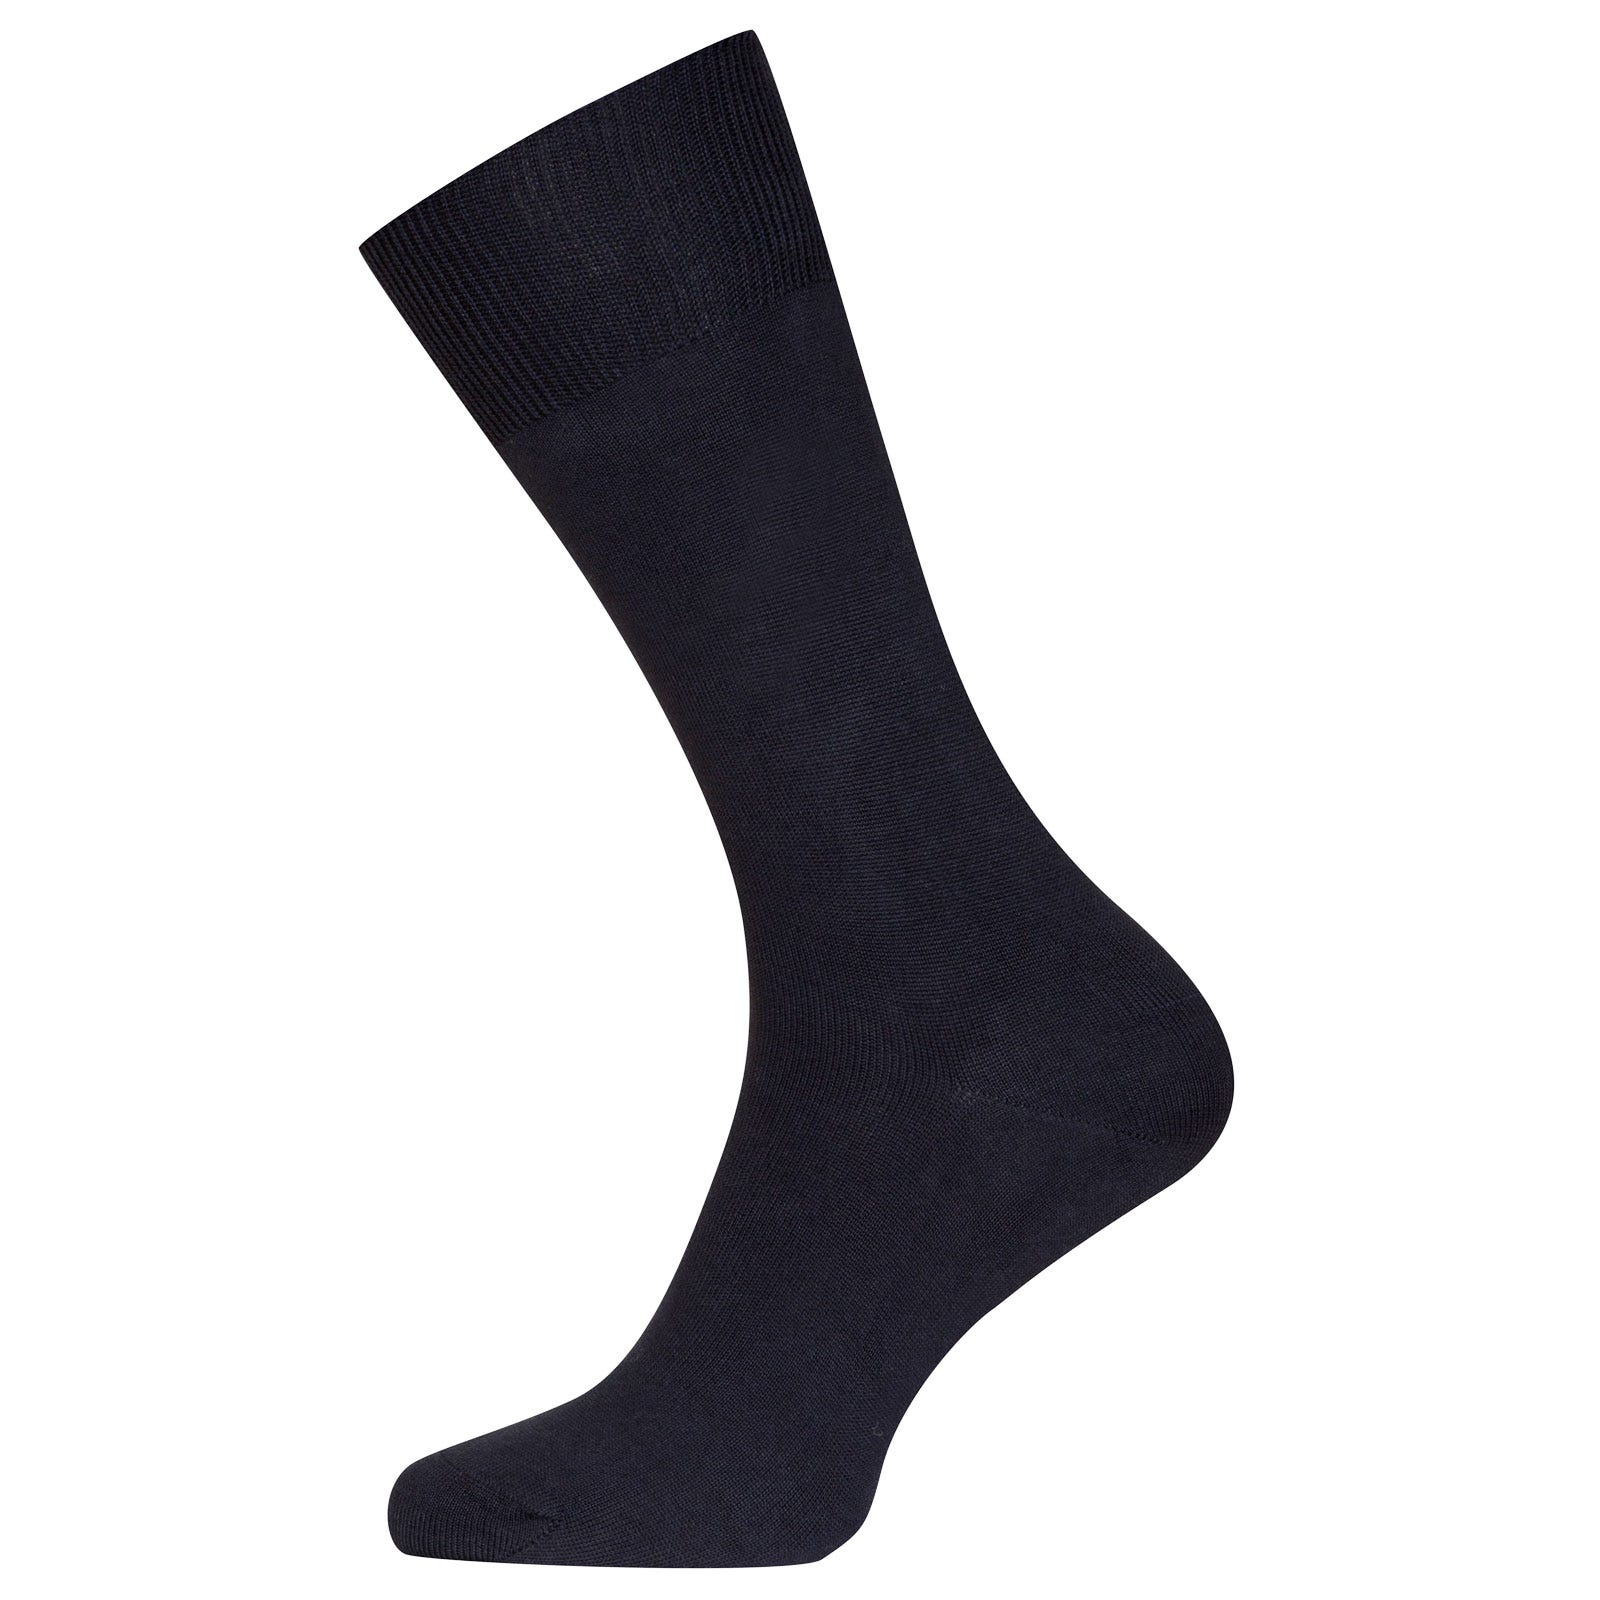 John Smedley Sigma Sea Island Cotton Socks in Navy-S/M